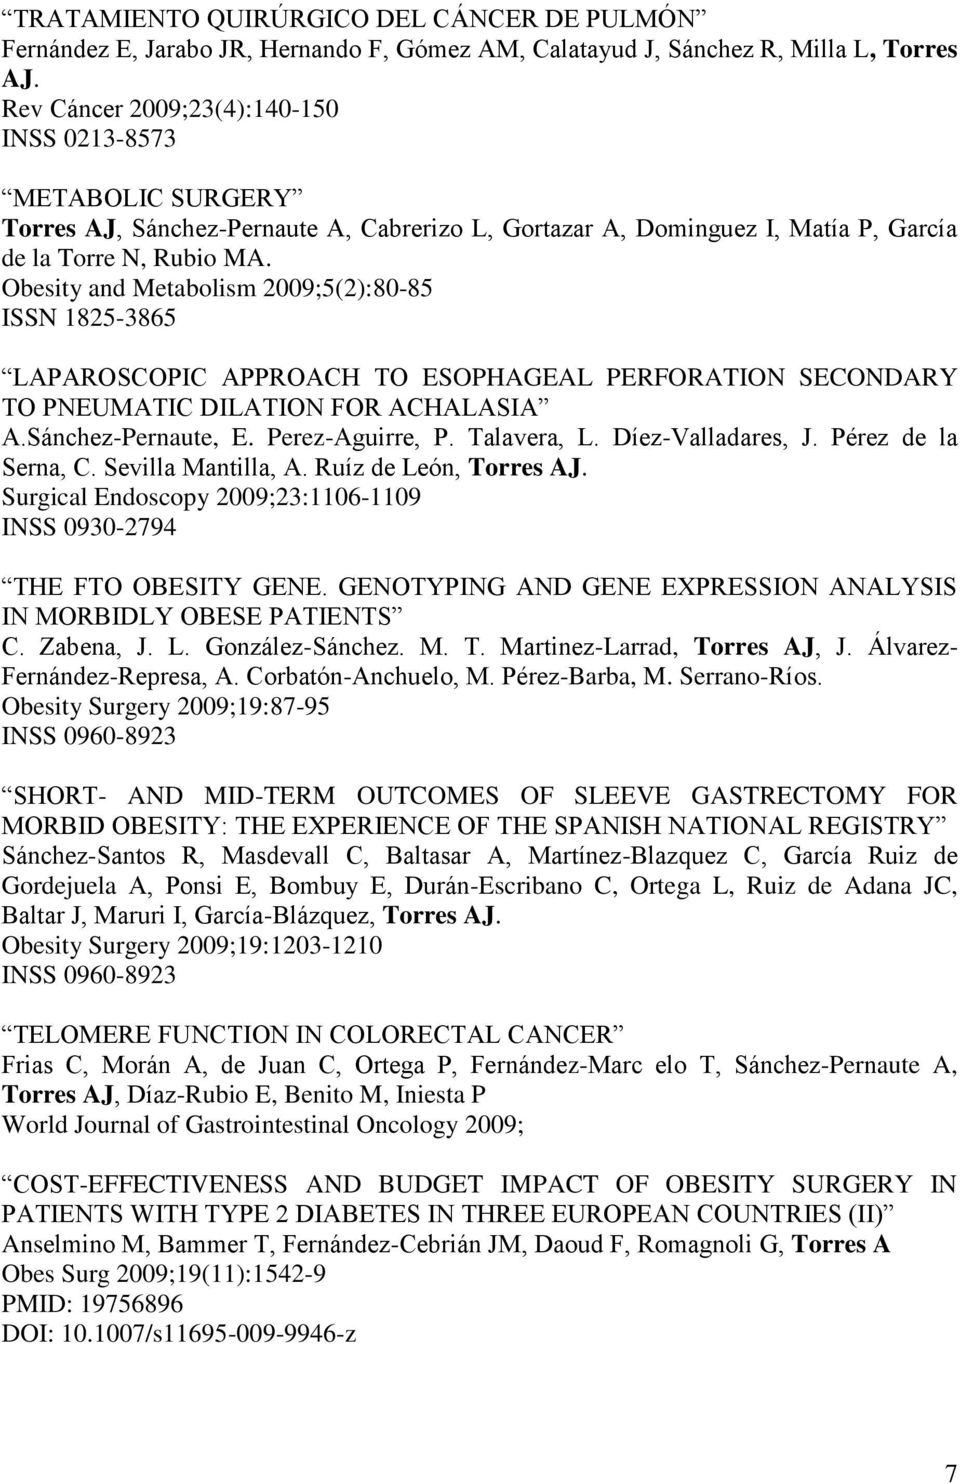 Obesity and Metabolism 2009;5(2):80-85 ISSN 1825-3865 LAPAROSCOPIC APPROACH TO ESOPHAGEAL PERFORATION SECONDARY TO PNEUMATIC DILATION FOR ACHALASIA A.Sánchez-Pernaute, E. Perez-Aguirre, P.